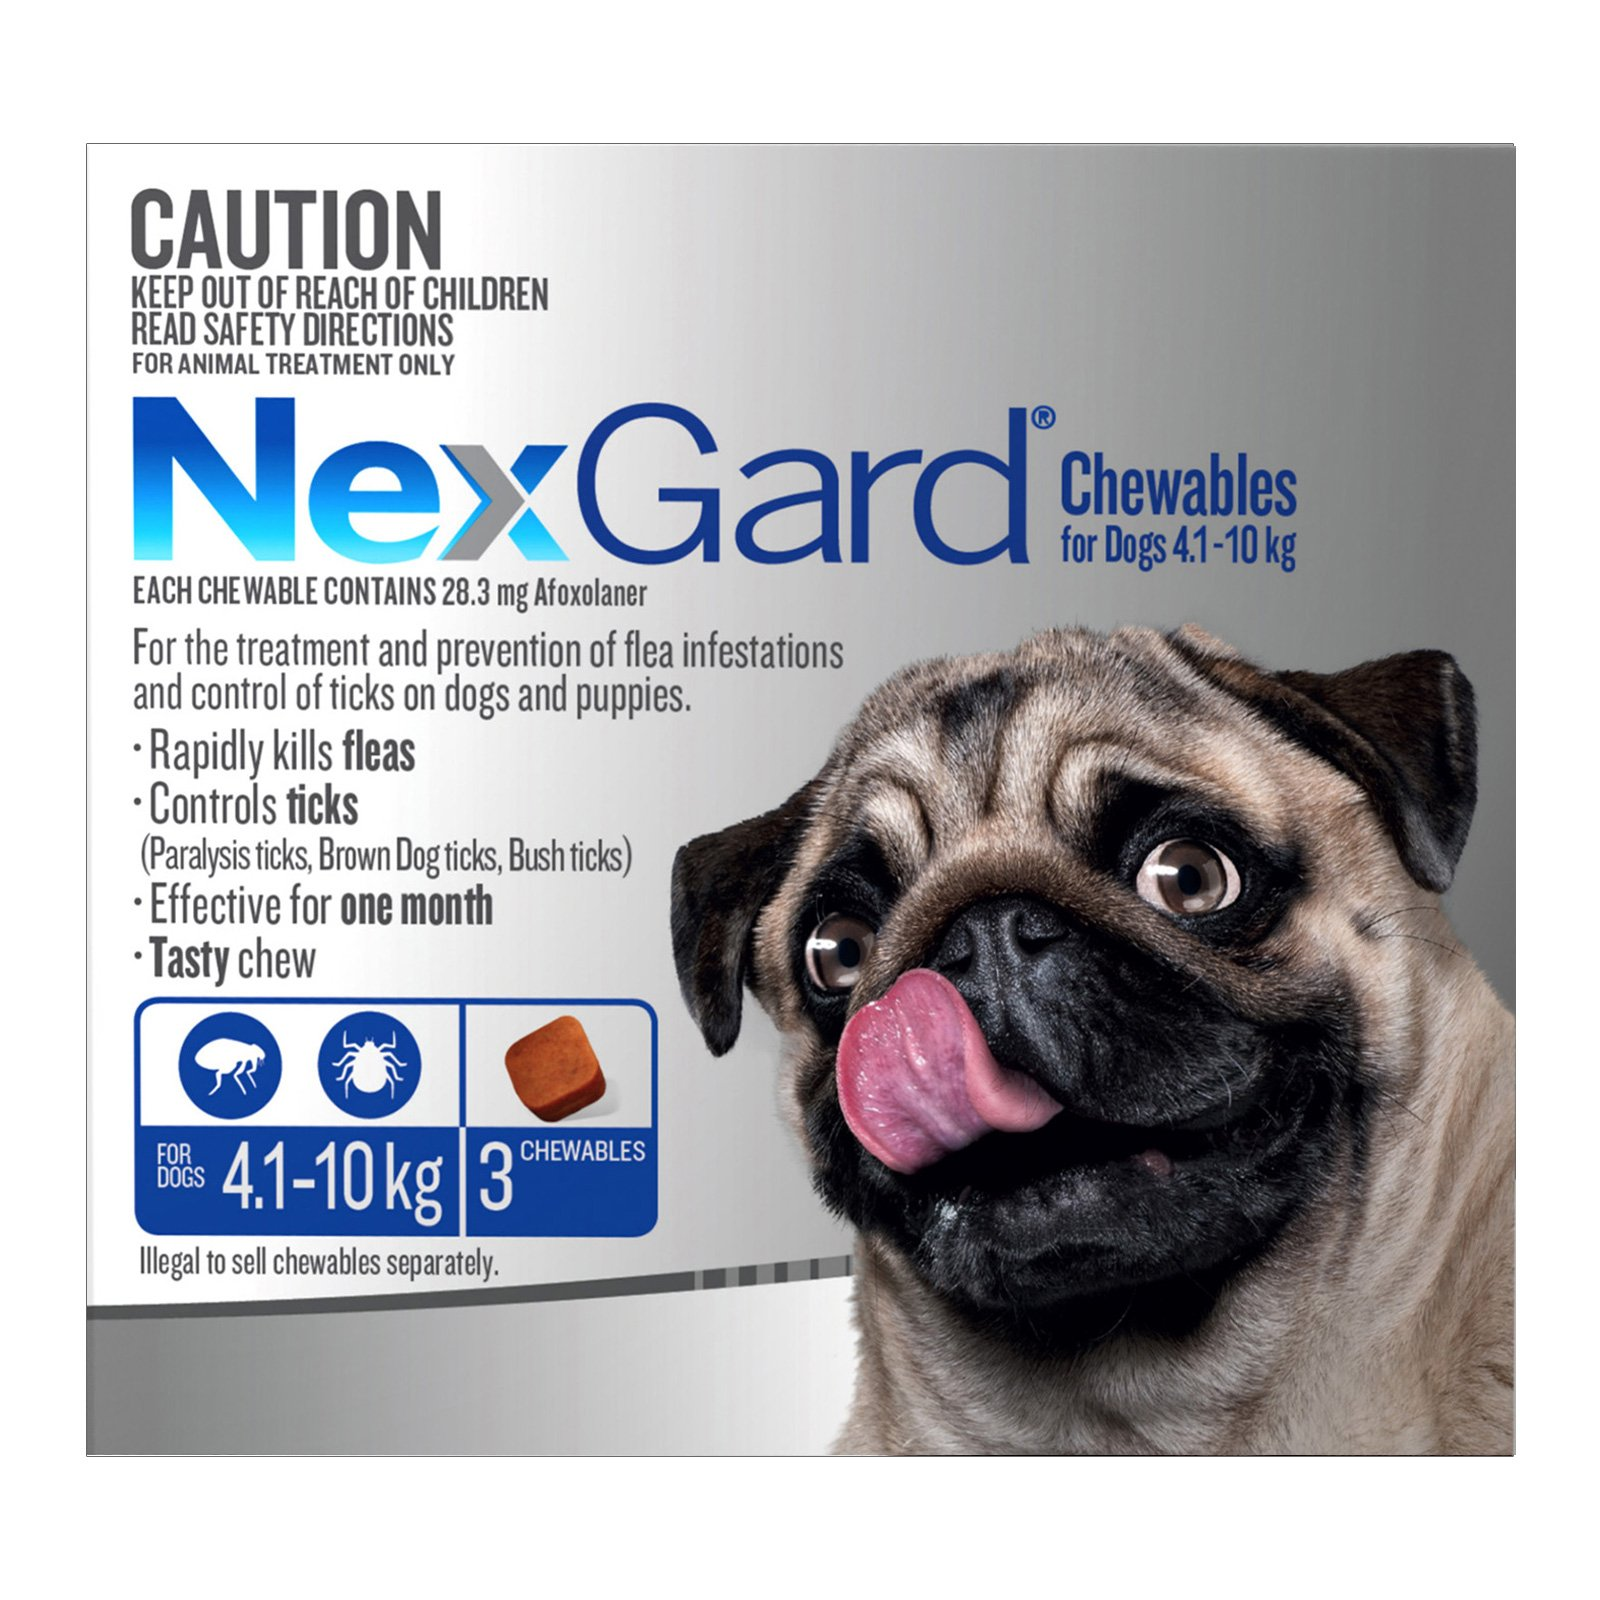 nexgard-chewables-for-dogs-4-1-10-kg_3.jpg